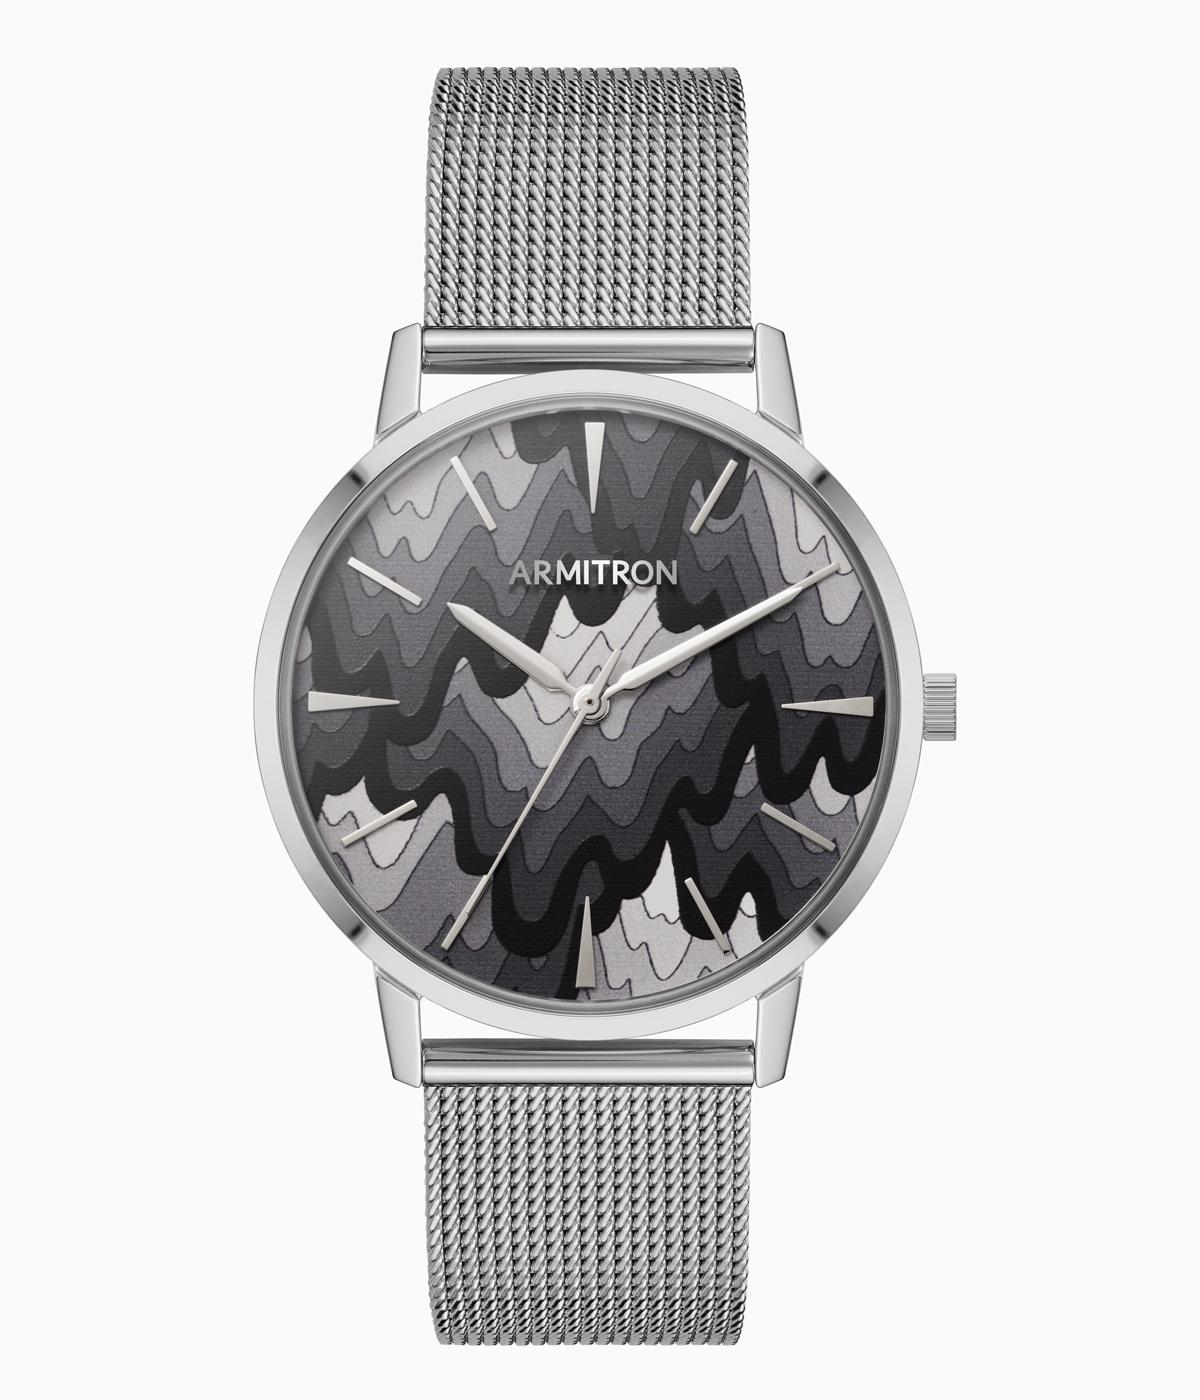 Black and white watch face with silver strap